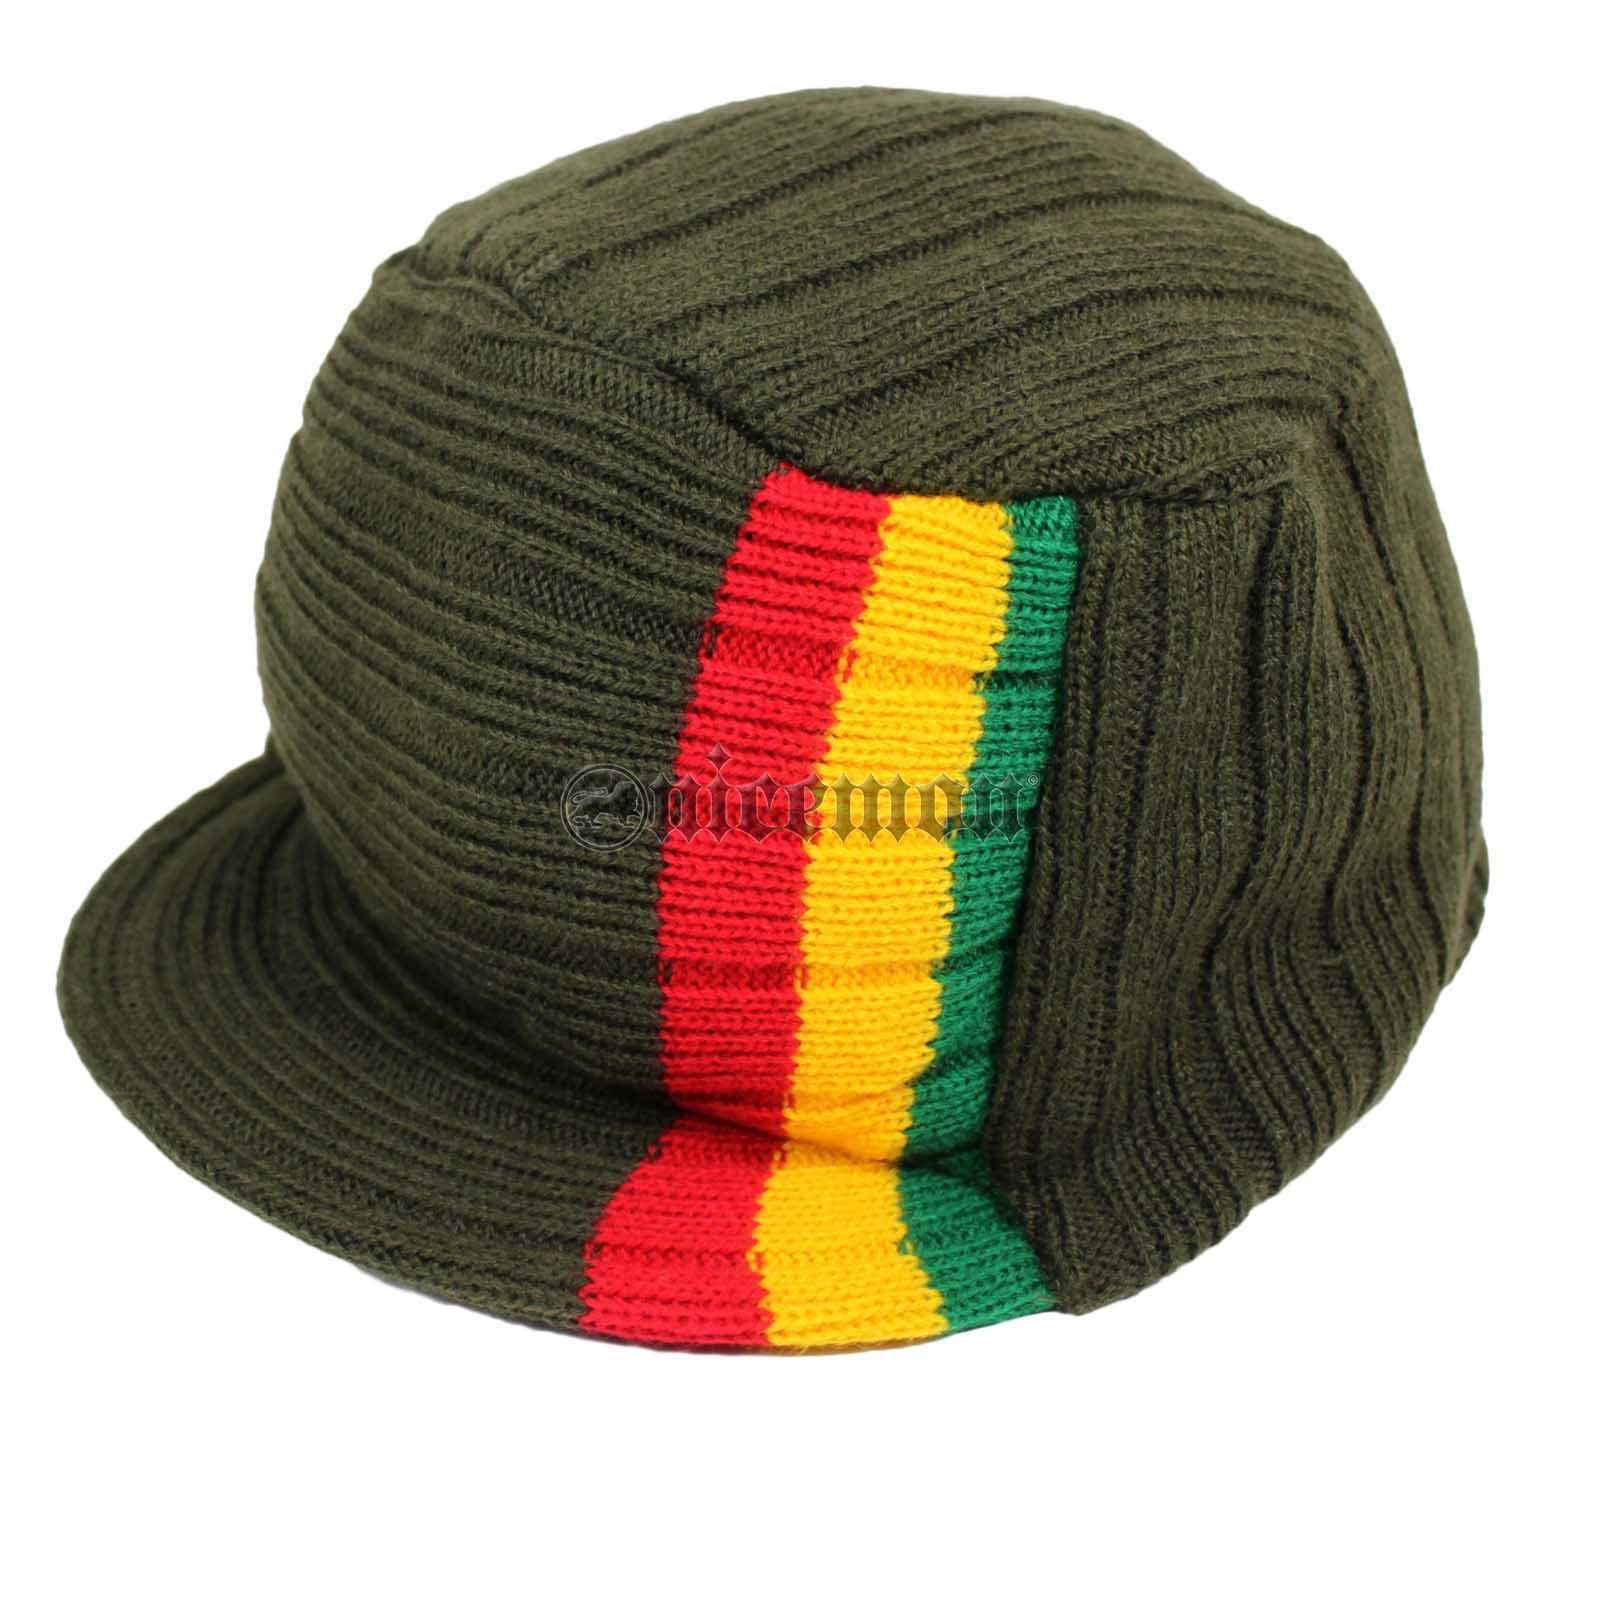 Roots Reggae Beanie Knit Cap Hat Kufi Rasta Surfer Hawaii Jamaica SMALL fit 72a2793f0237